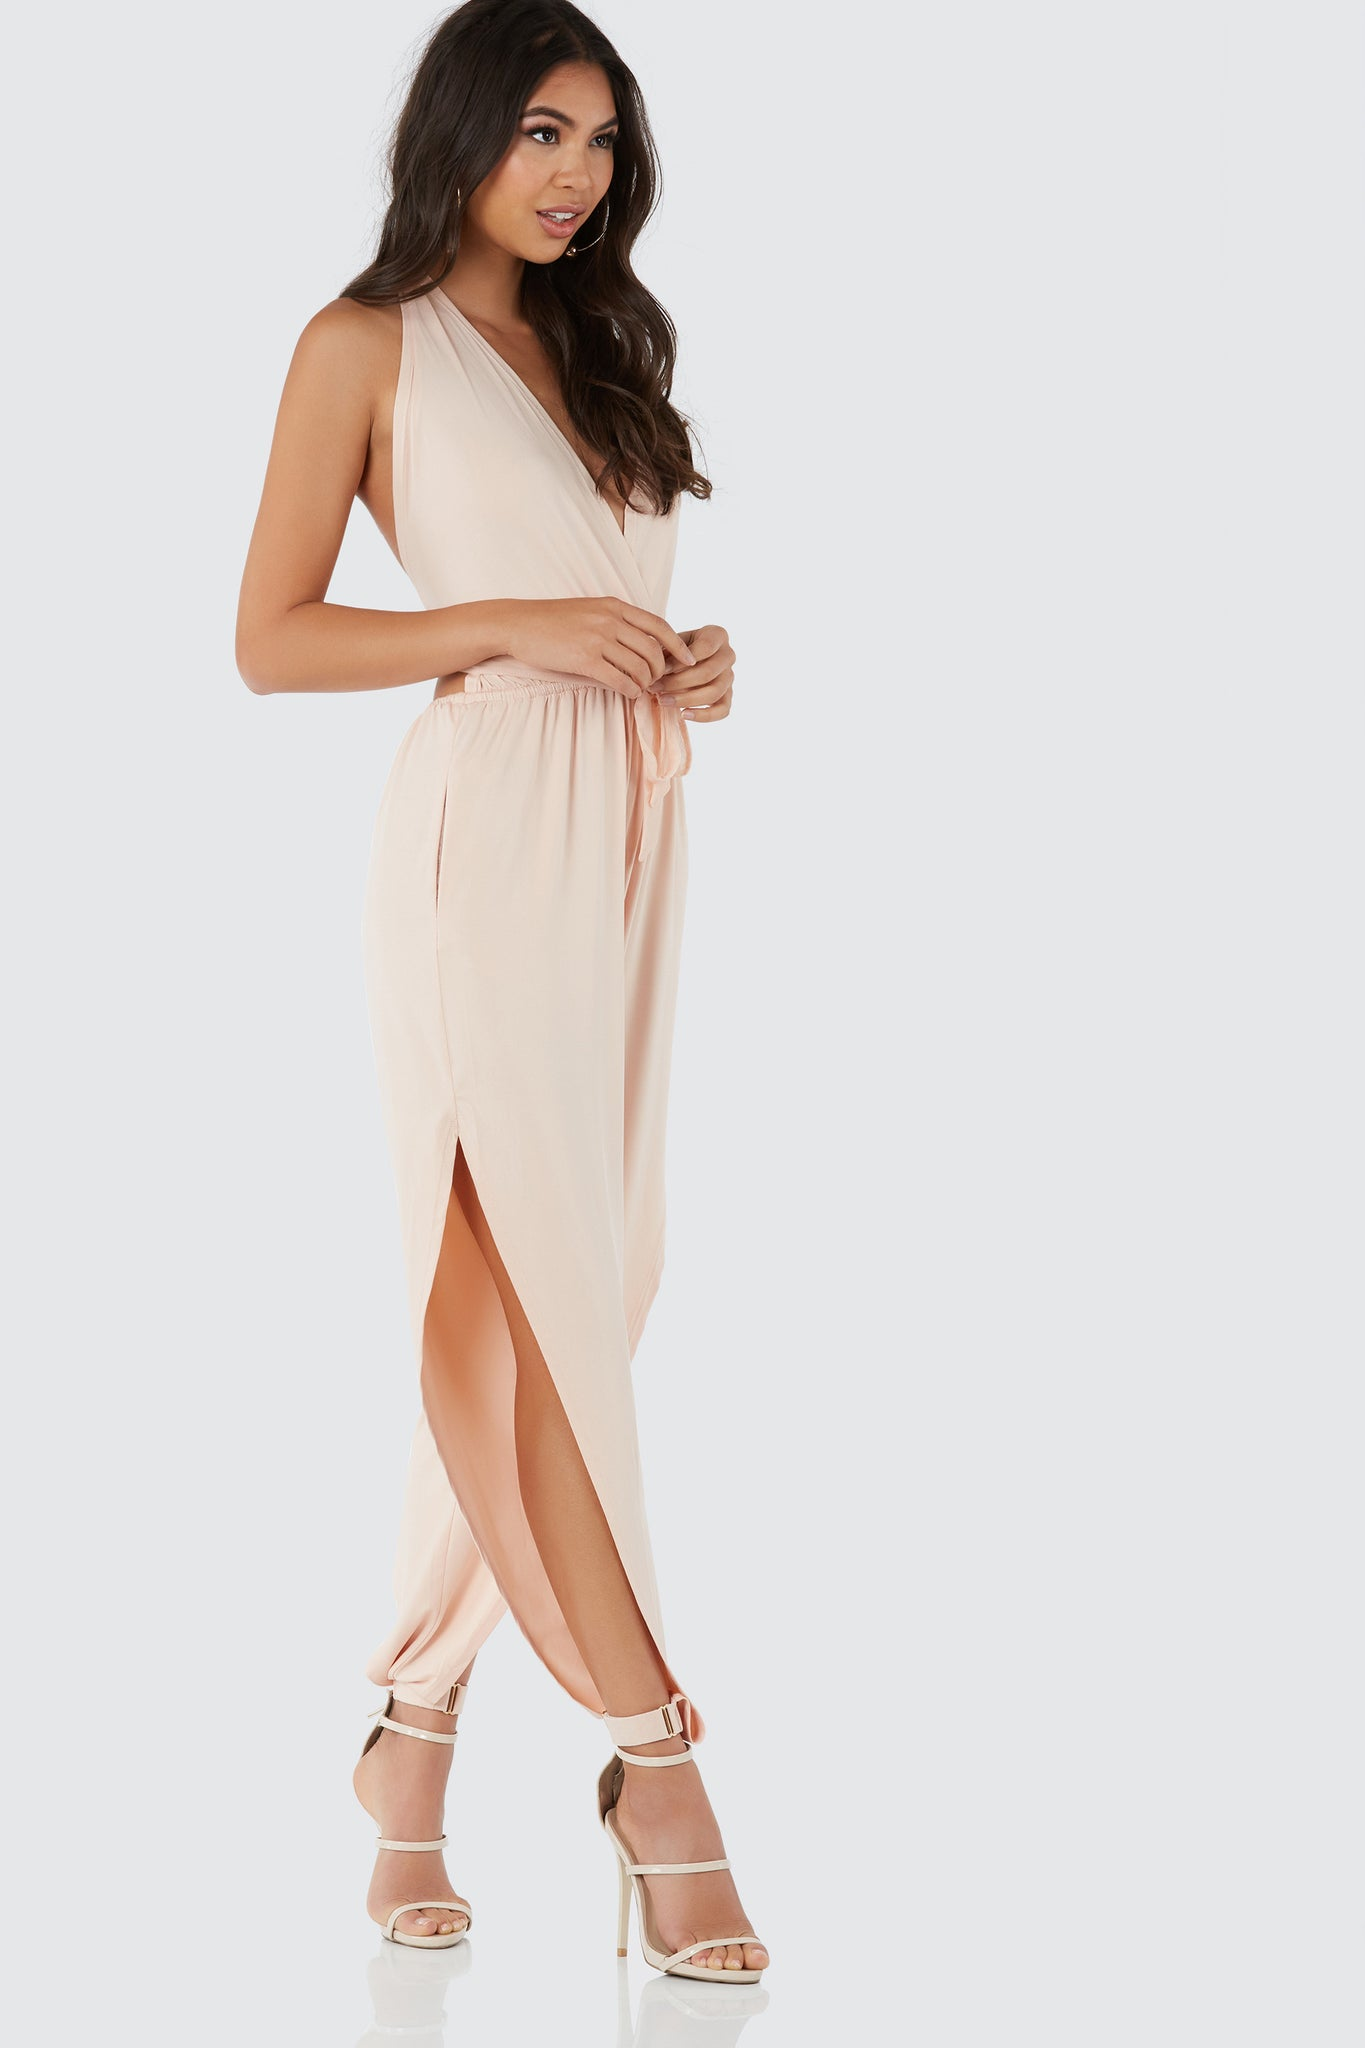 Slinky halter jumpsuit with sexy open back and bold slits on each leg. Buckle detailing with contrast mesh ties for closure.